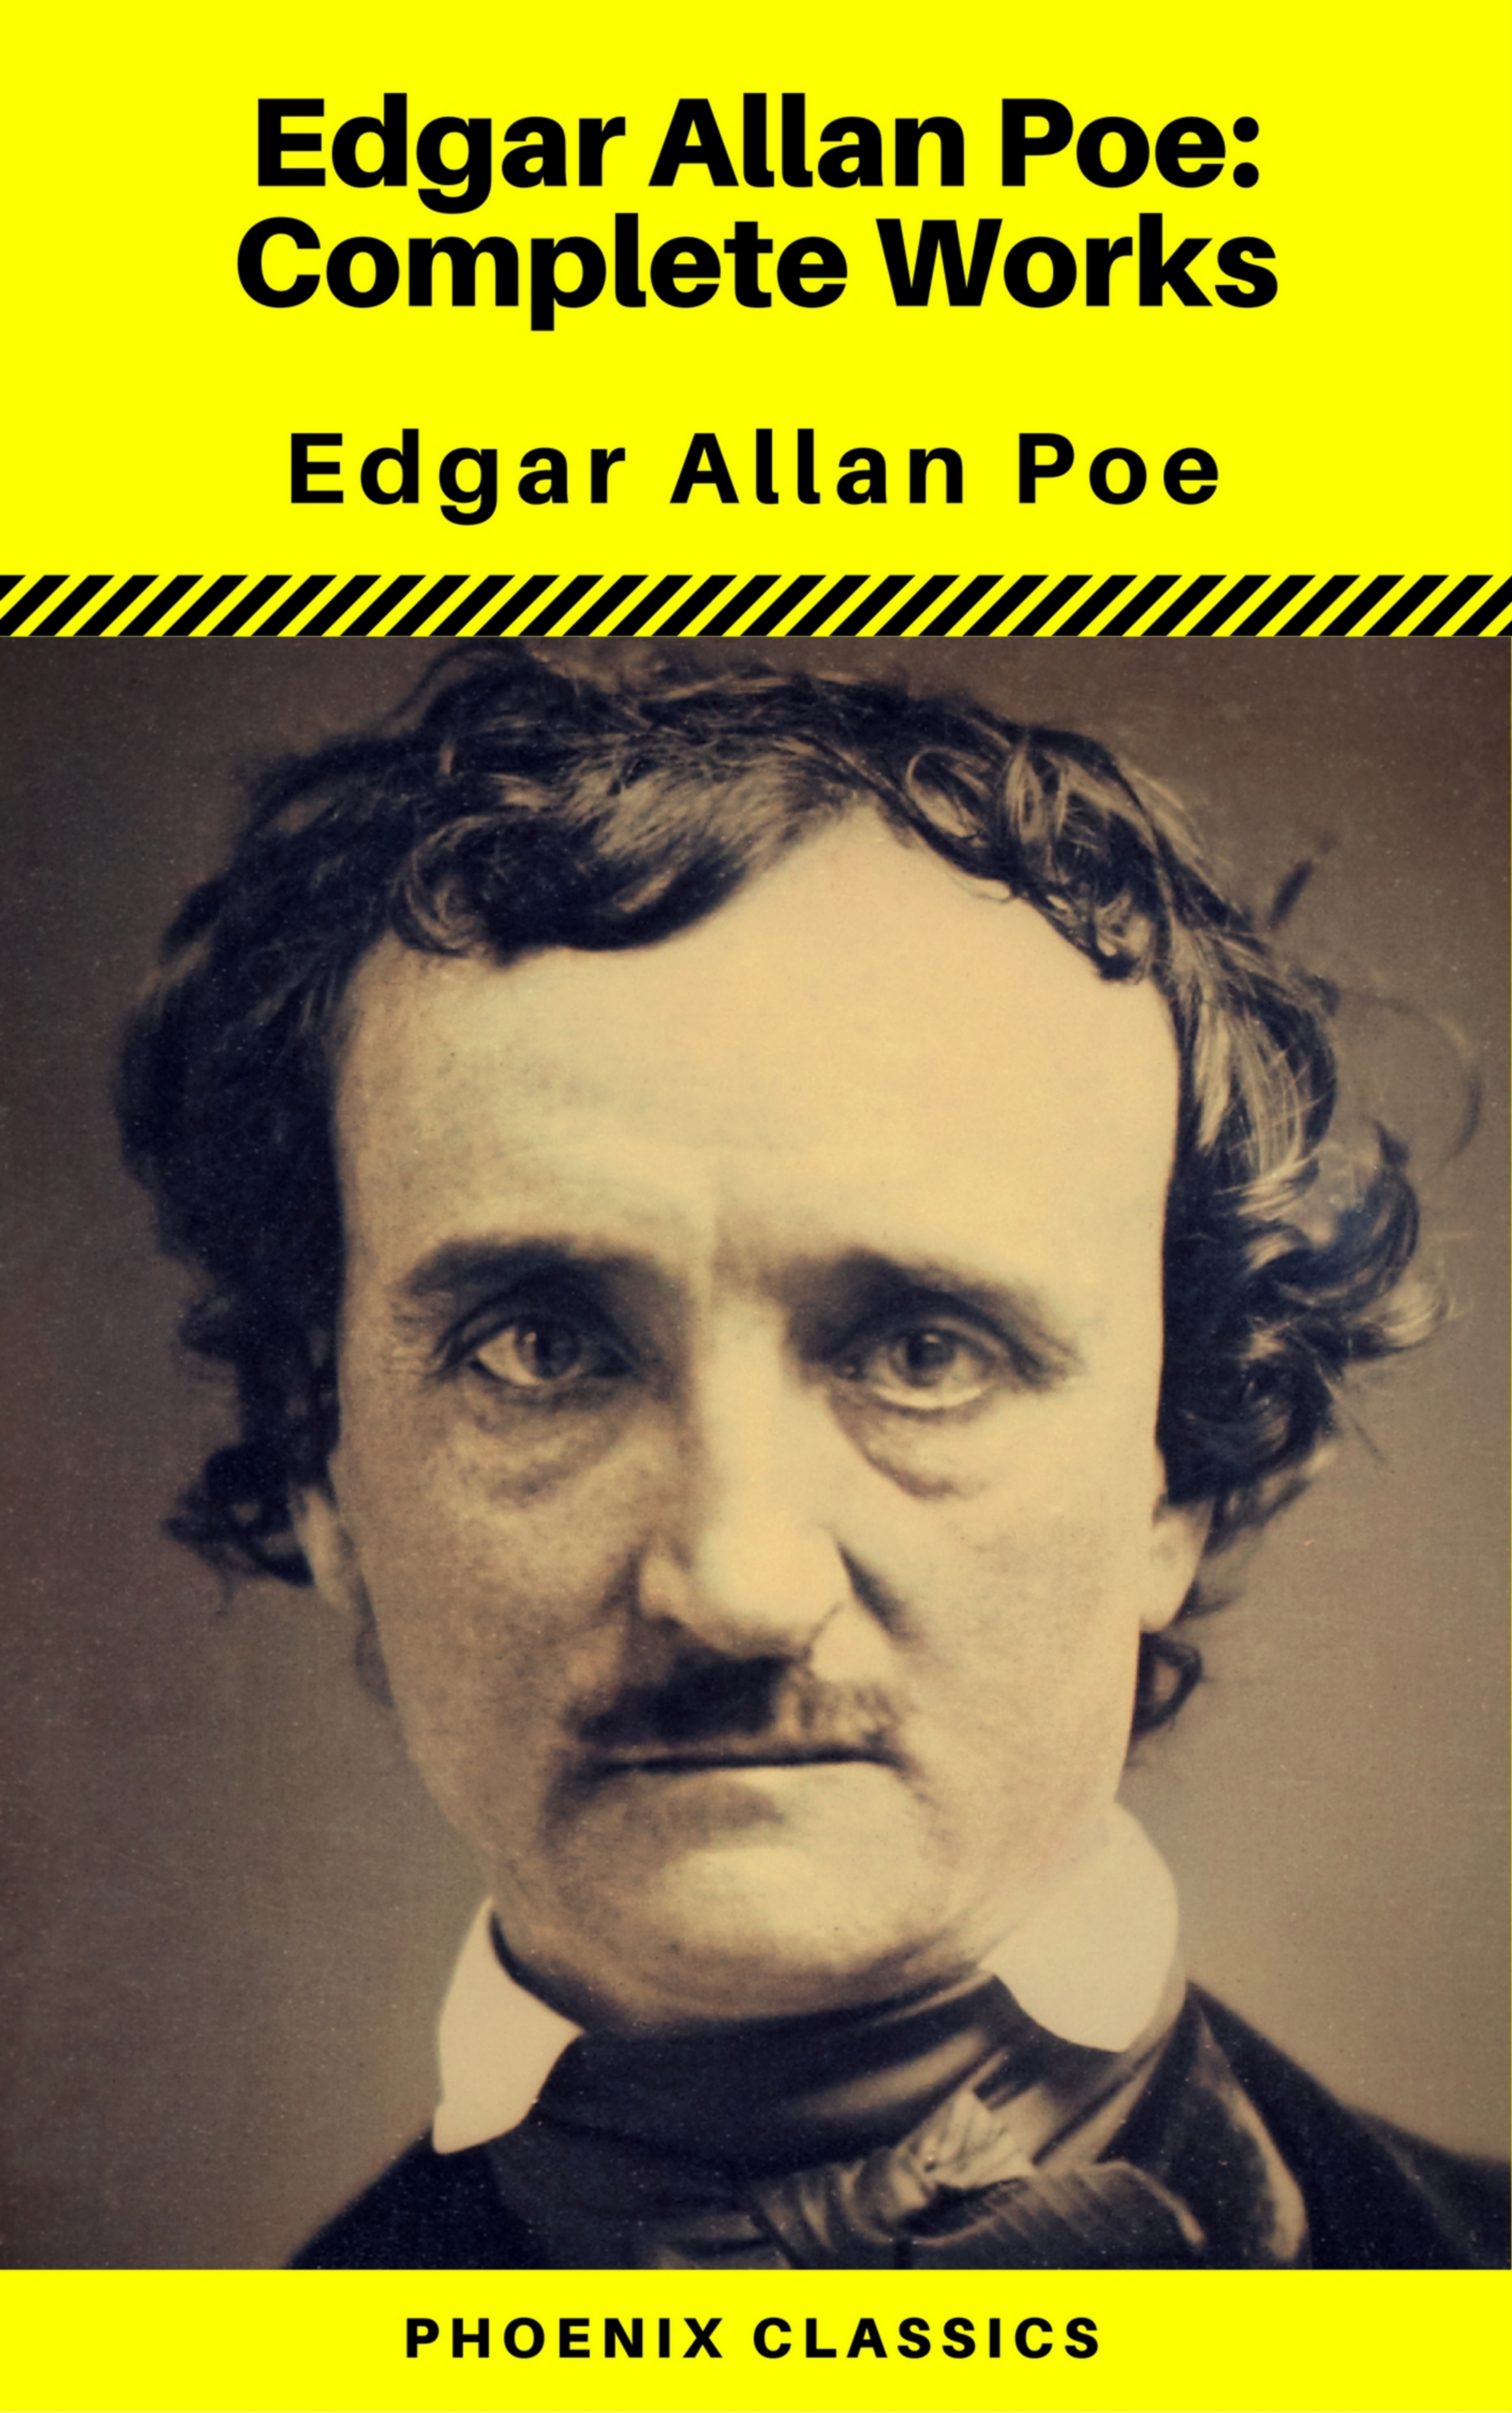 edgar allan poe the complete works annotated phoenix classics